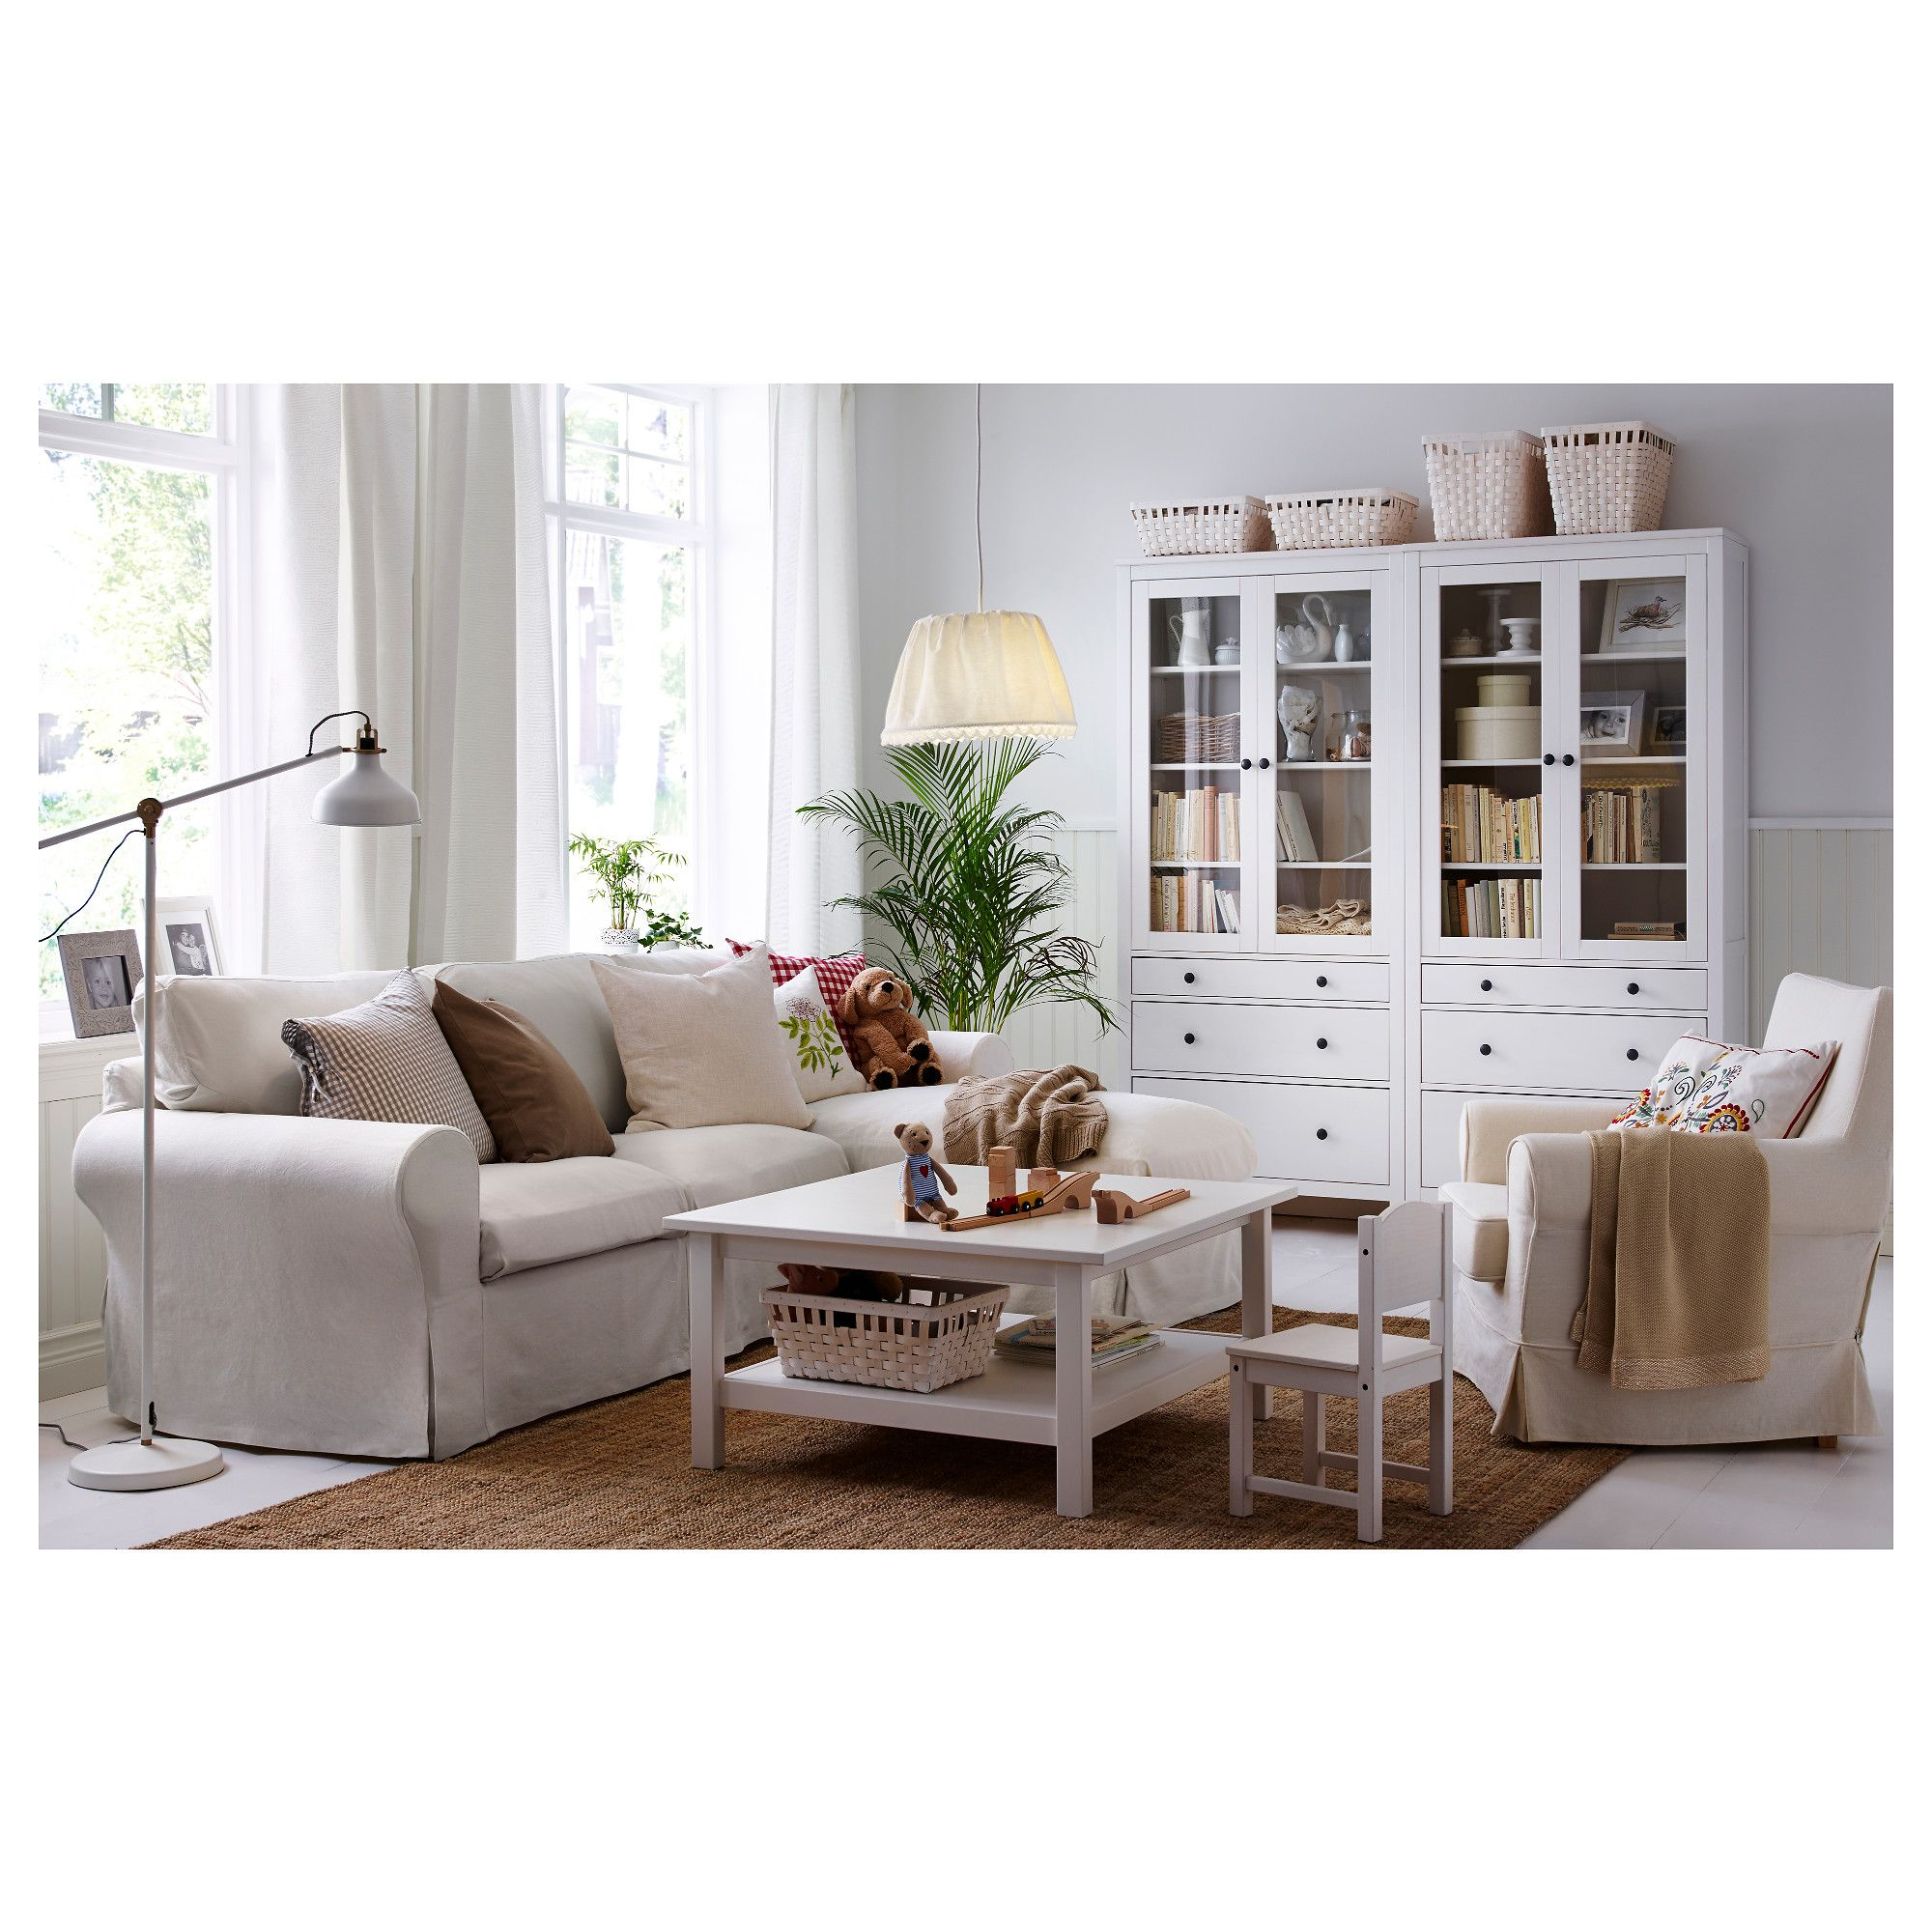 LOHALS Rug, flatwoven Natural IKEA | Jute, HEMNES and White stain